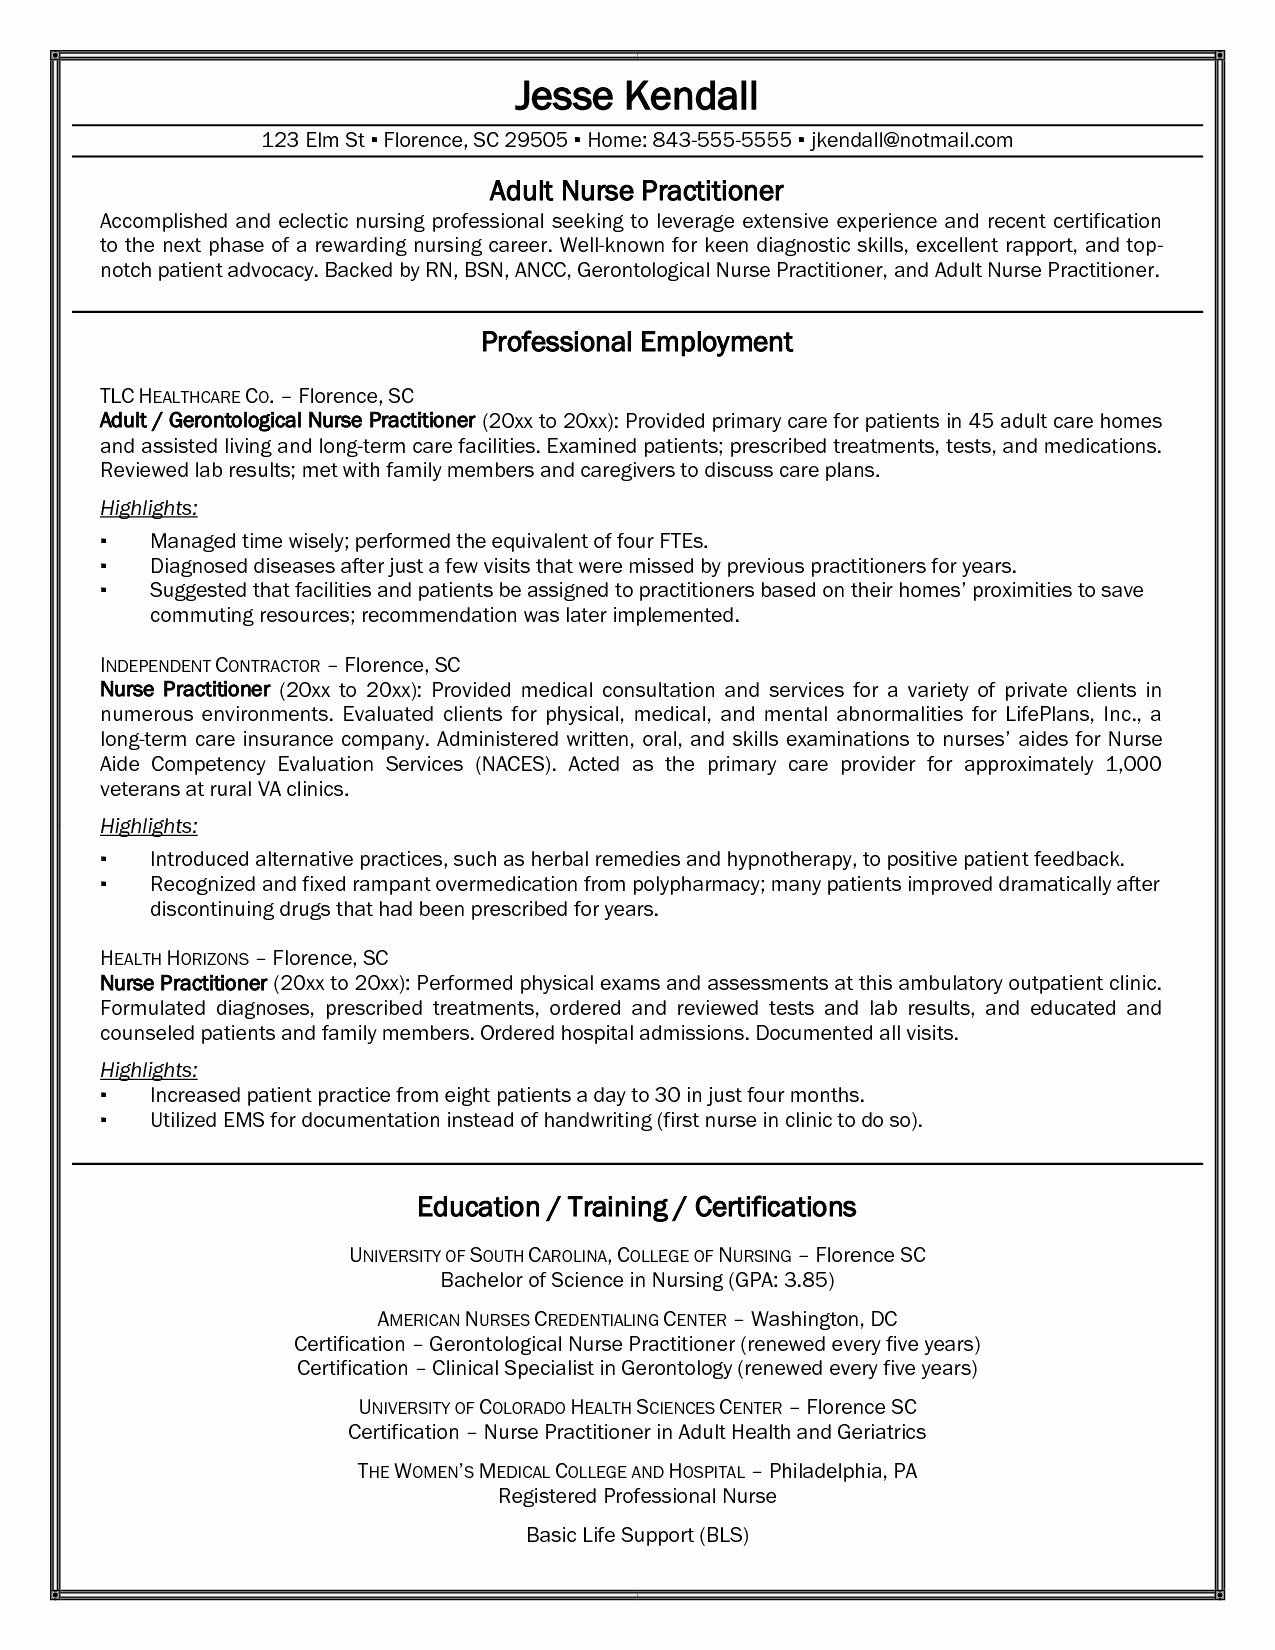 Nursing Student Resume Clinical Experience Best Resume